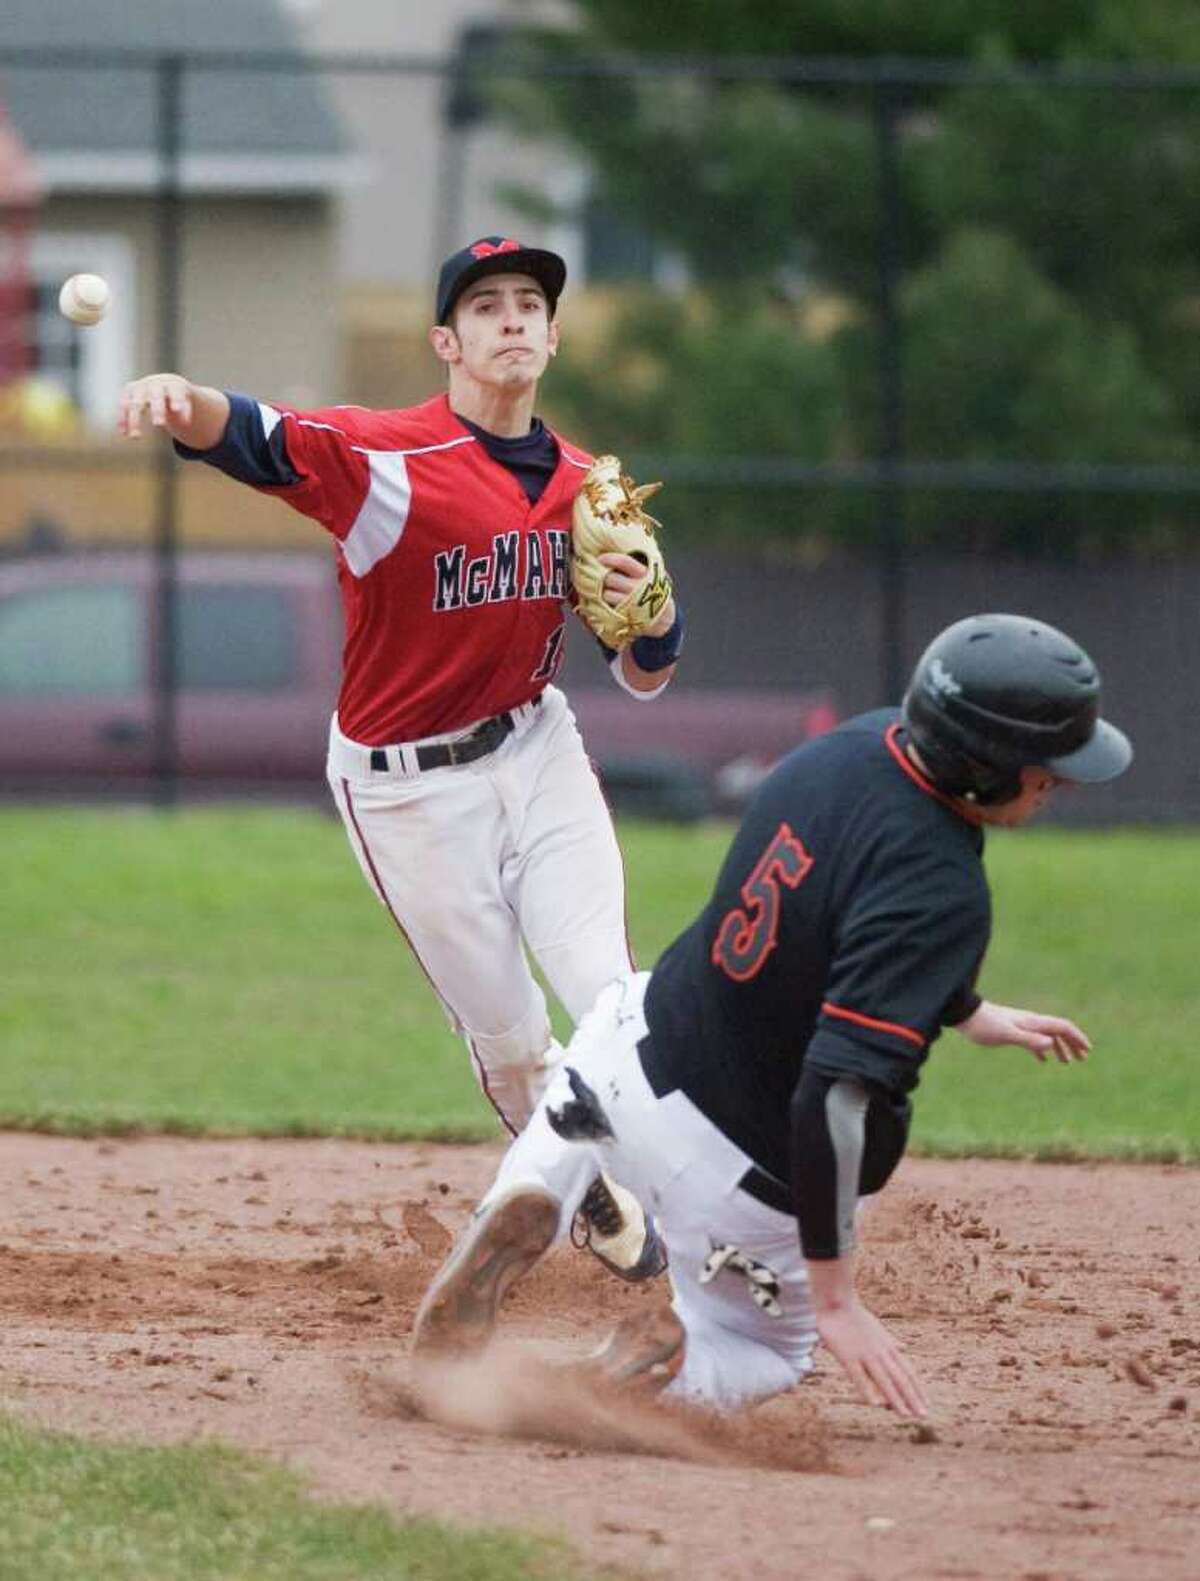 McMahon High School's Bryan Daniello makes the throw to first as Stamford High's Tommy Fabricatore arrives late in baseball action at Stamford, Conn. on Friday April 8, 2011.